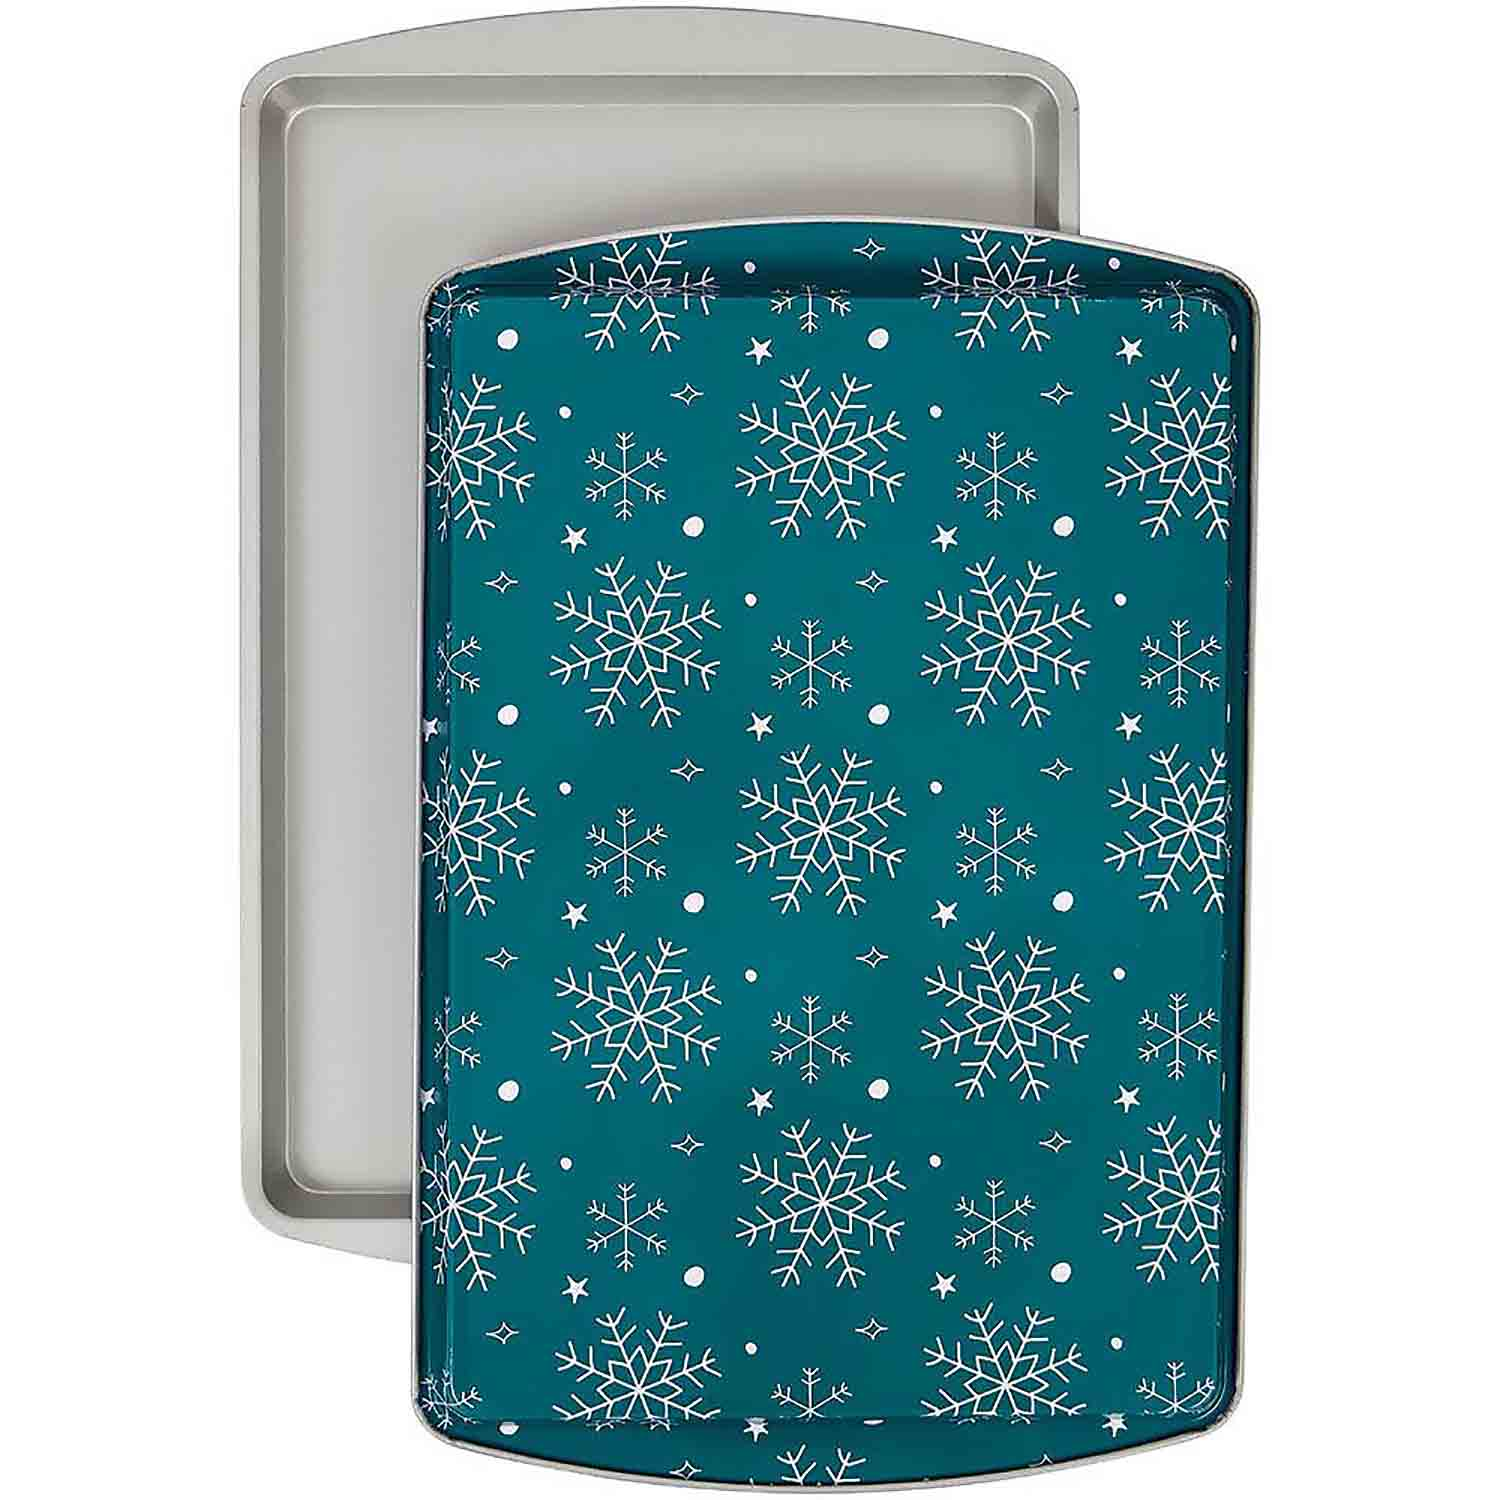 Snowflake Cookie Sheet Set